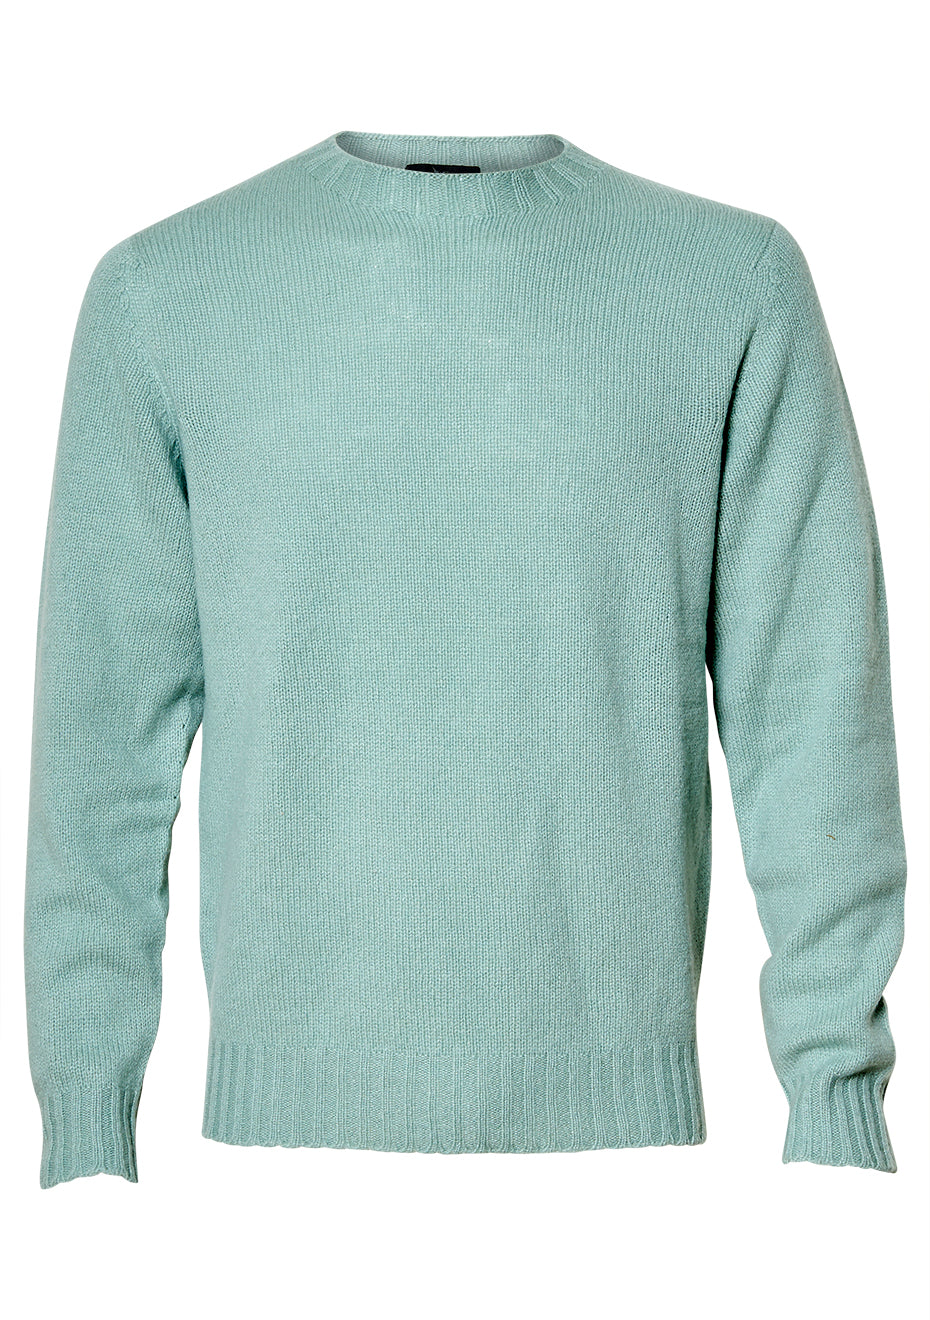 Dusty Mint Cashmere Sweater